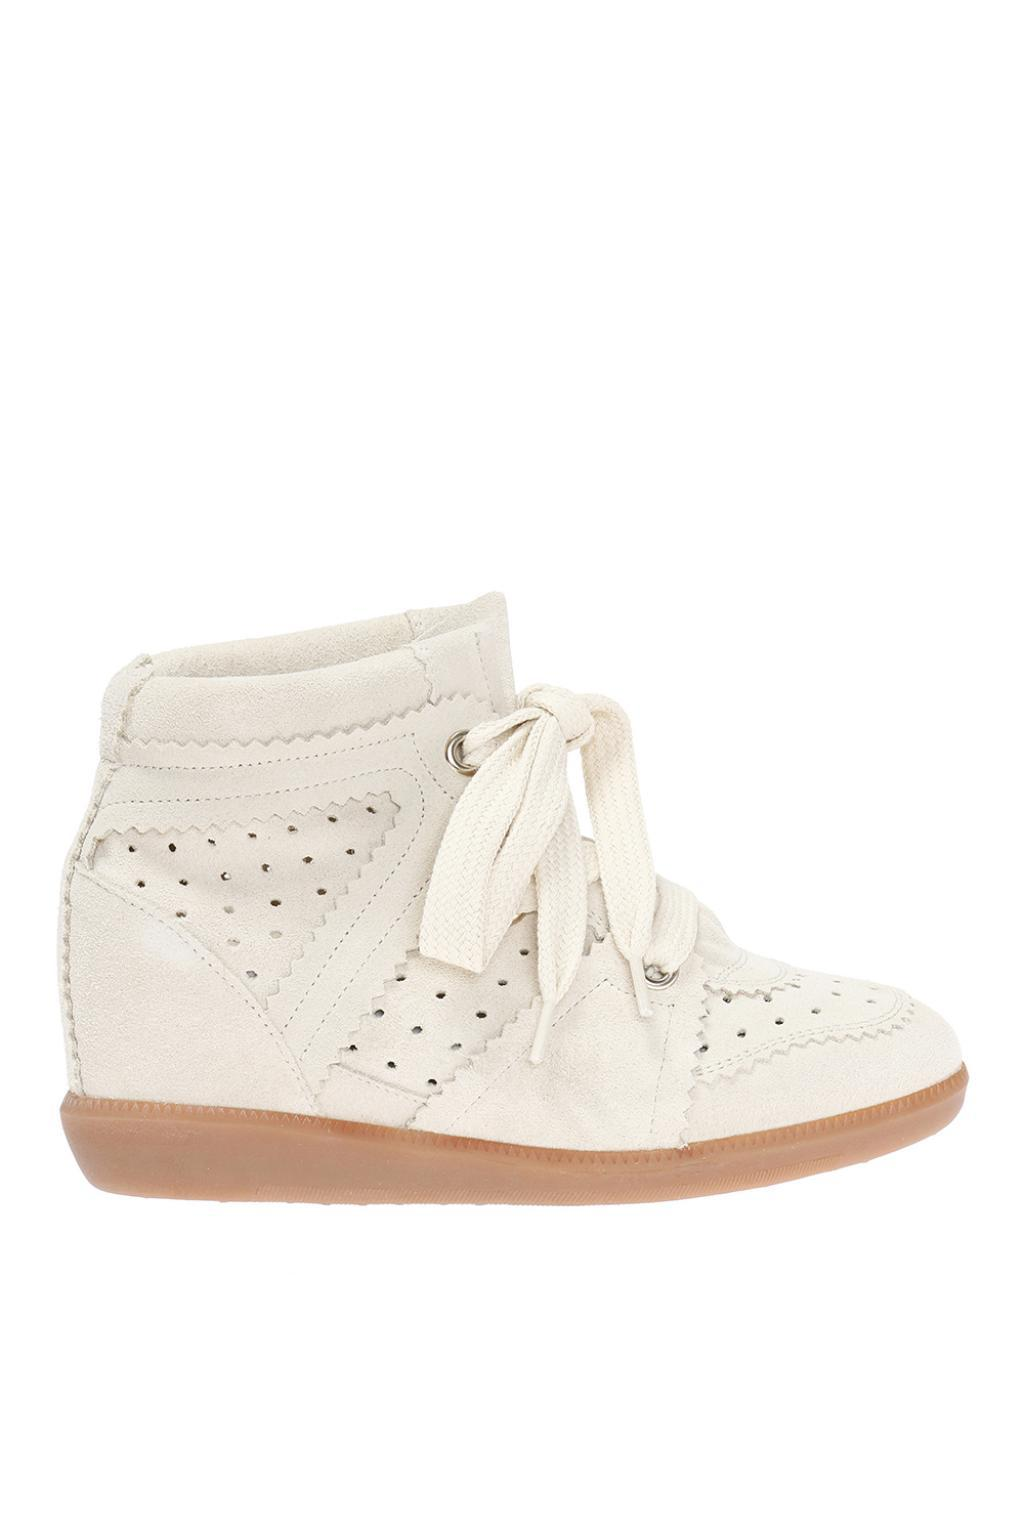 cf93837459c Isabel Marant  bobby  Wedge Sneakers in White - Lyst